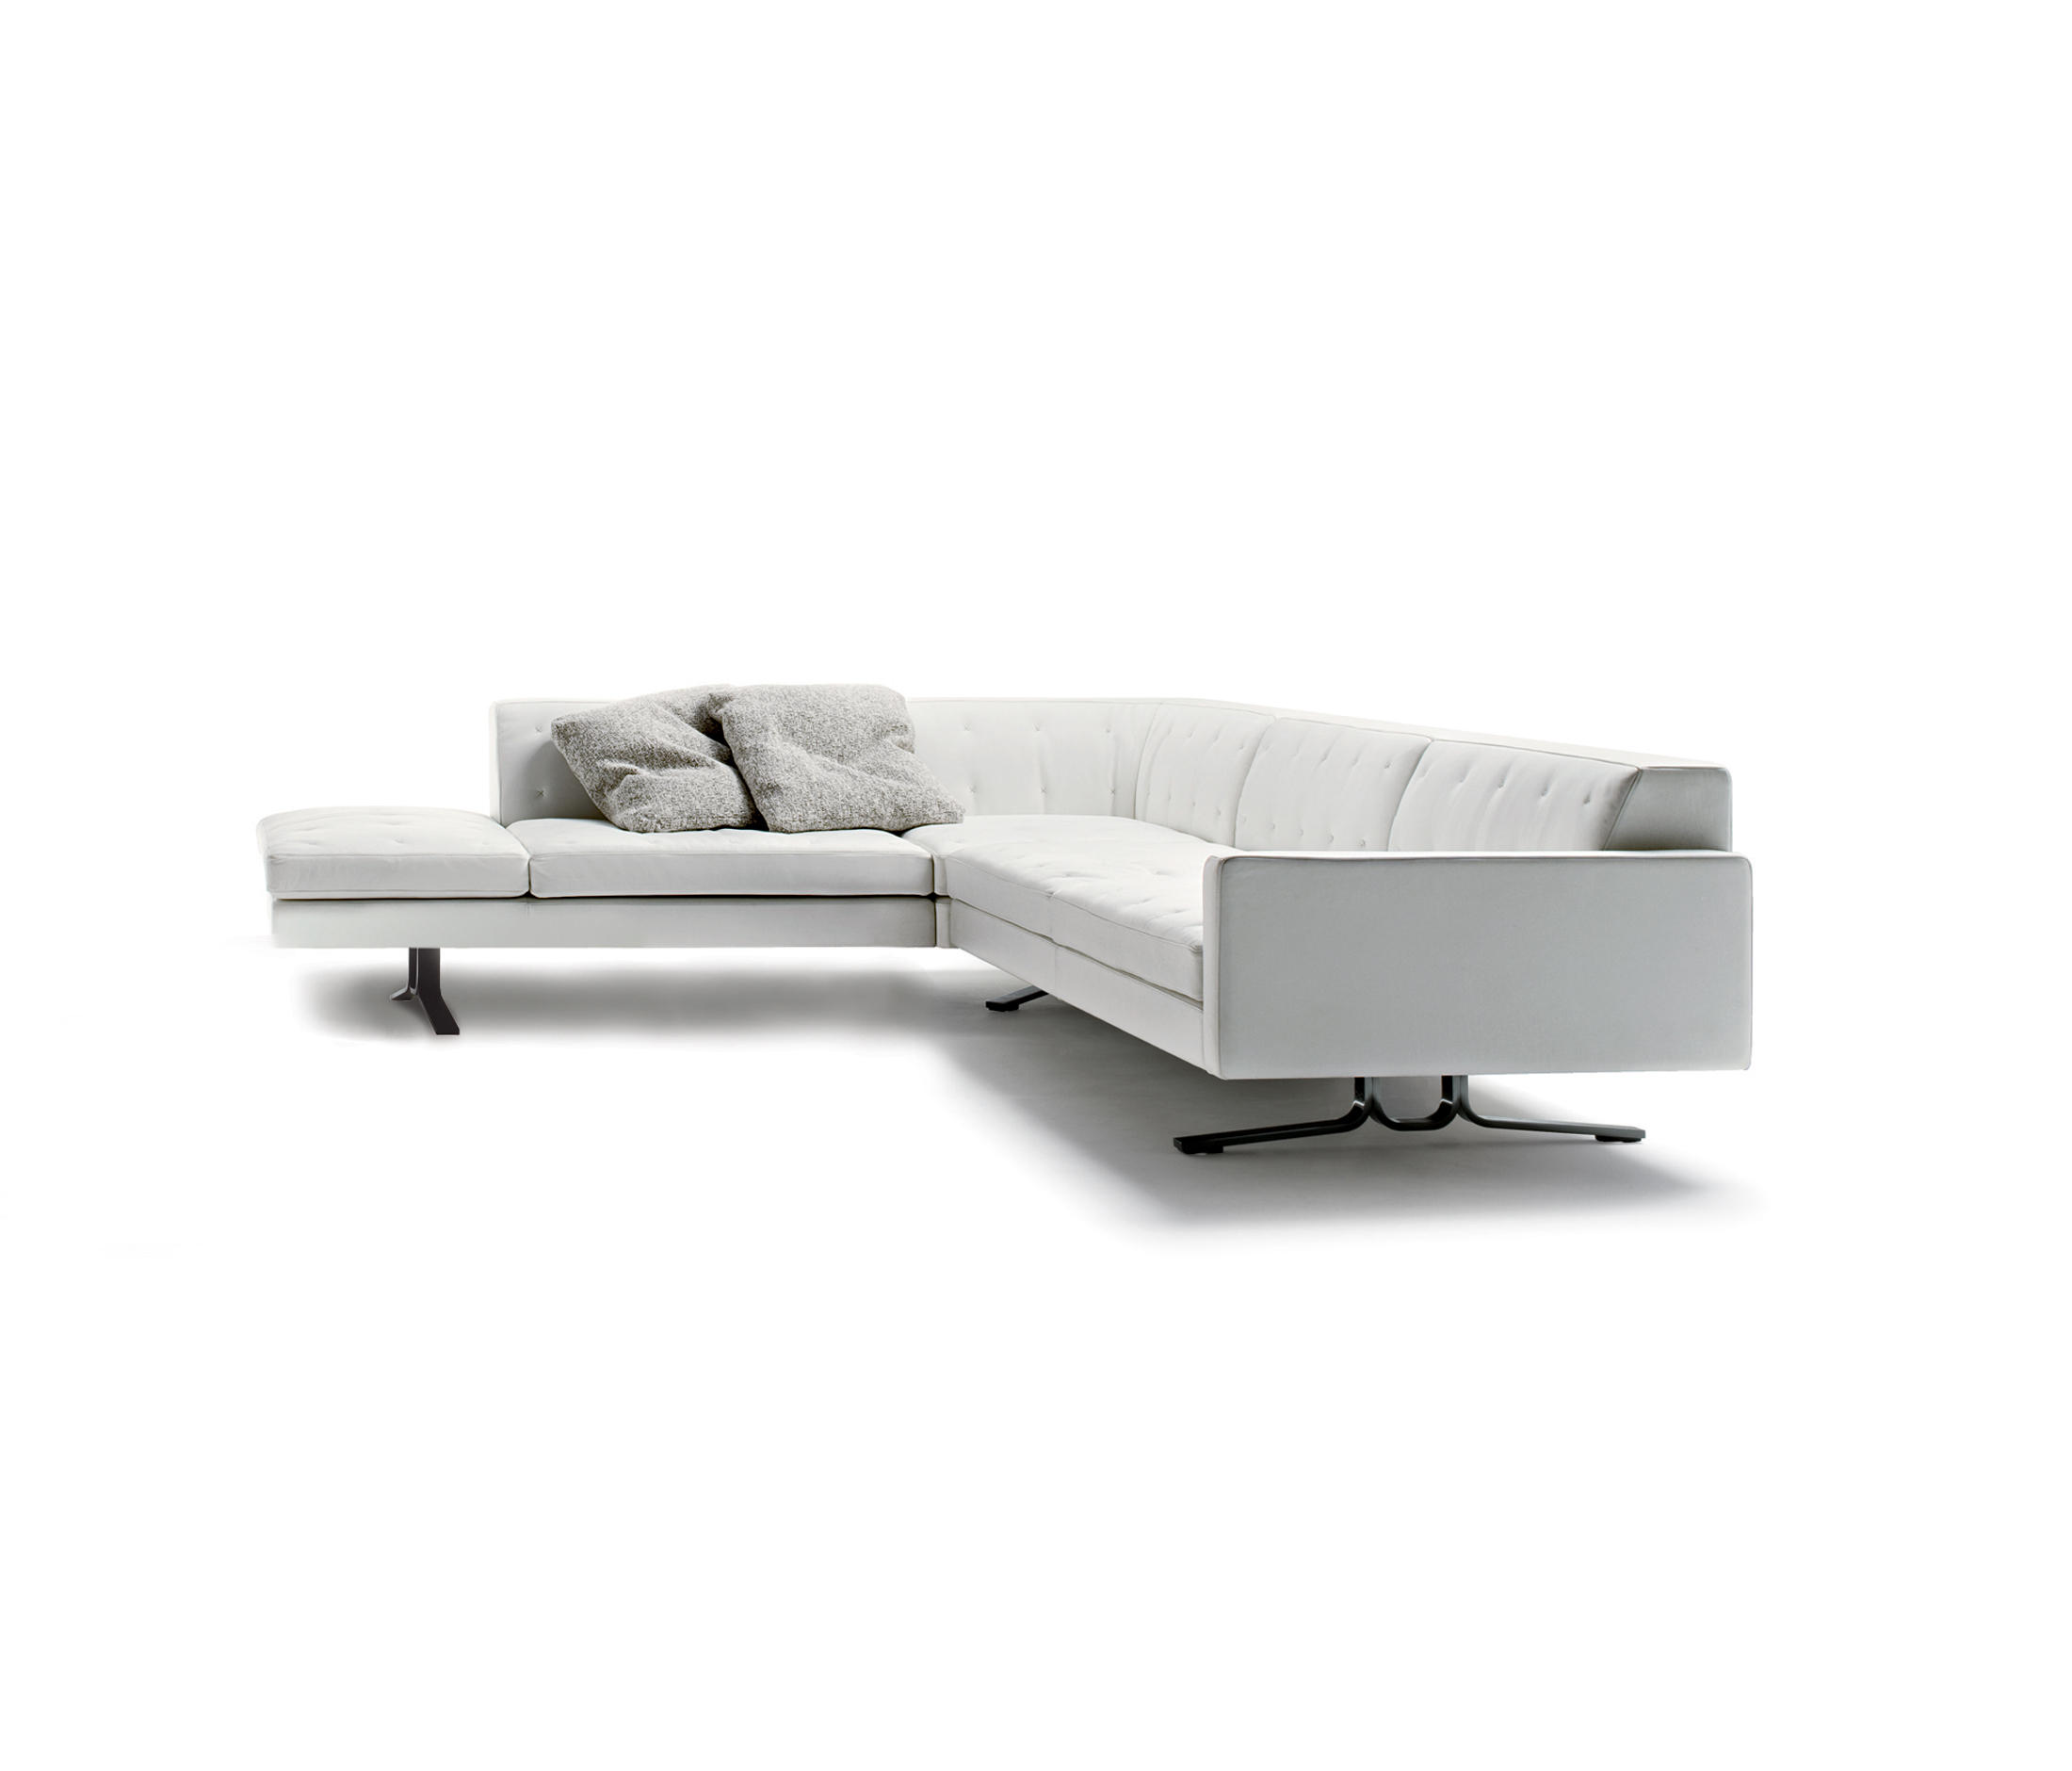 Kennedee sofa kennedee sofa with chaise longue by poltrona for Chaise longue frau